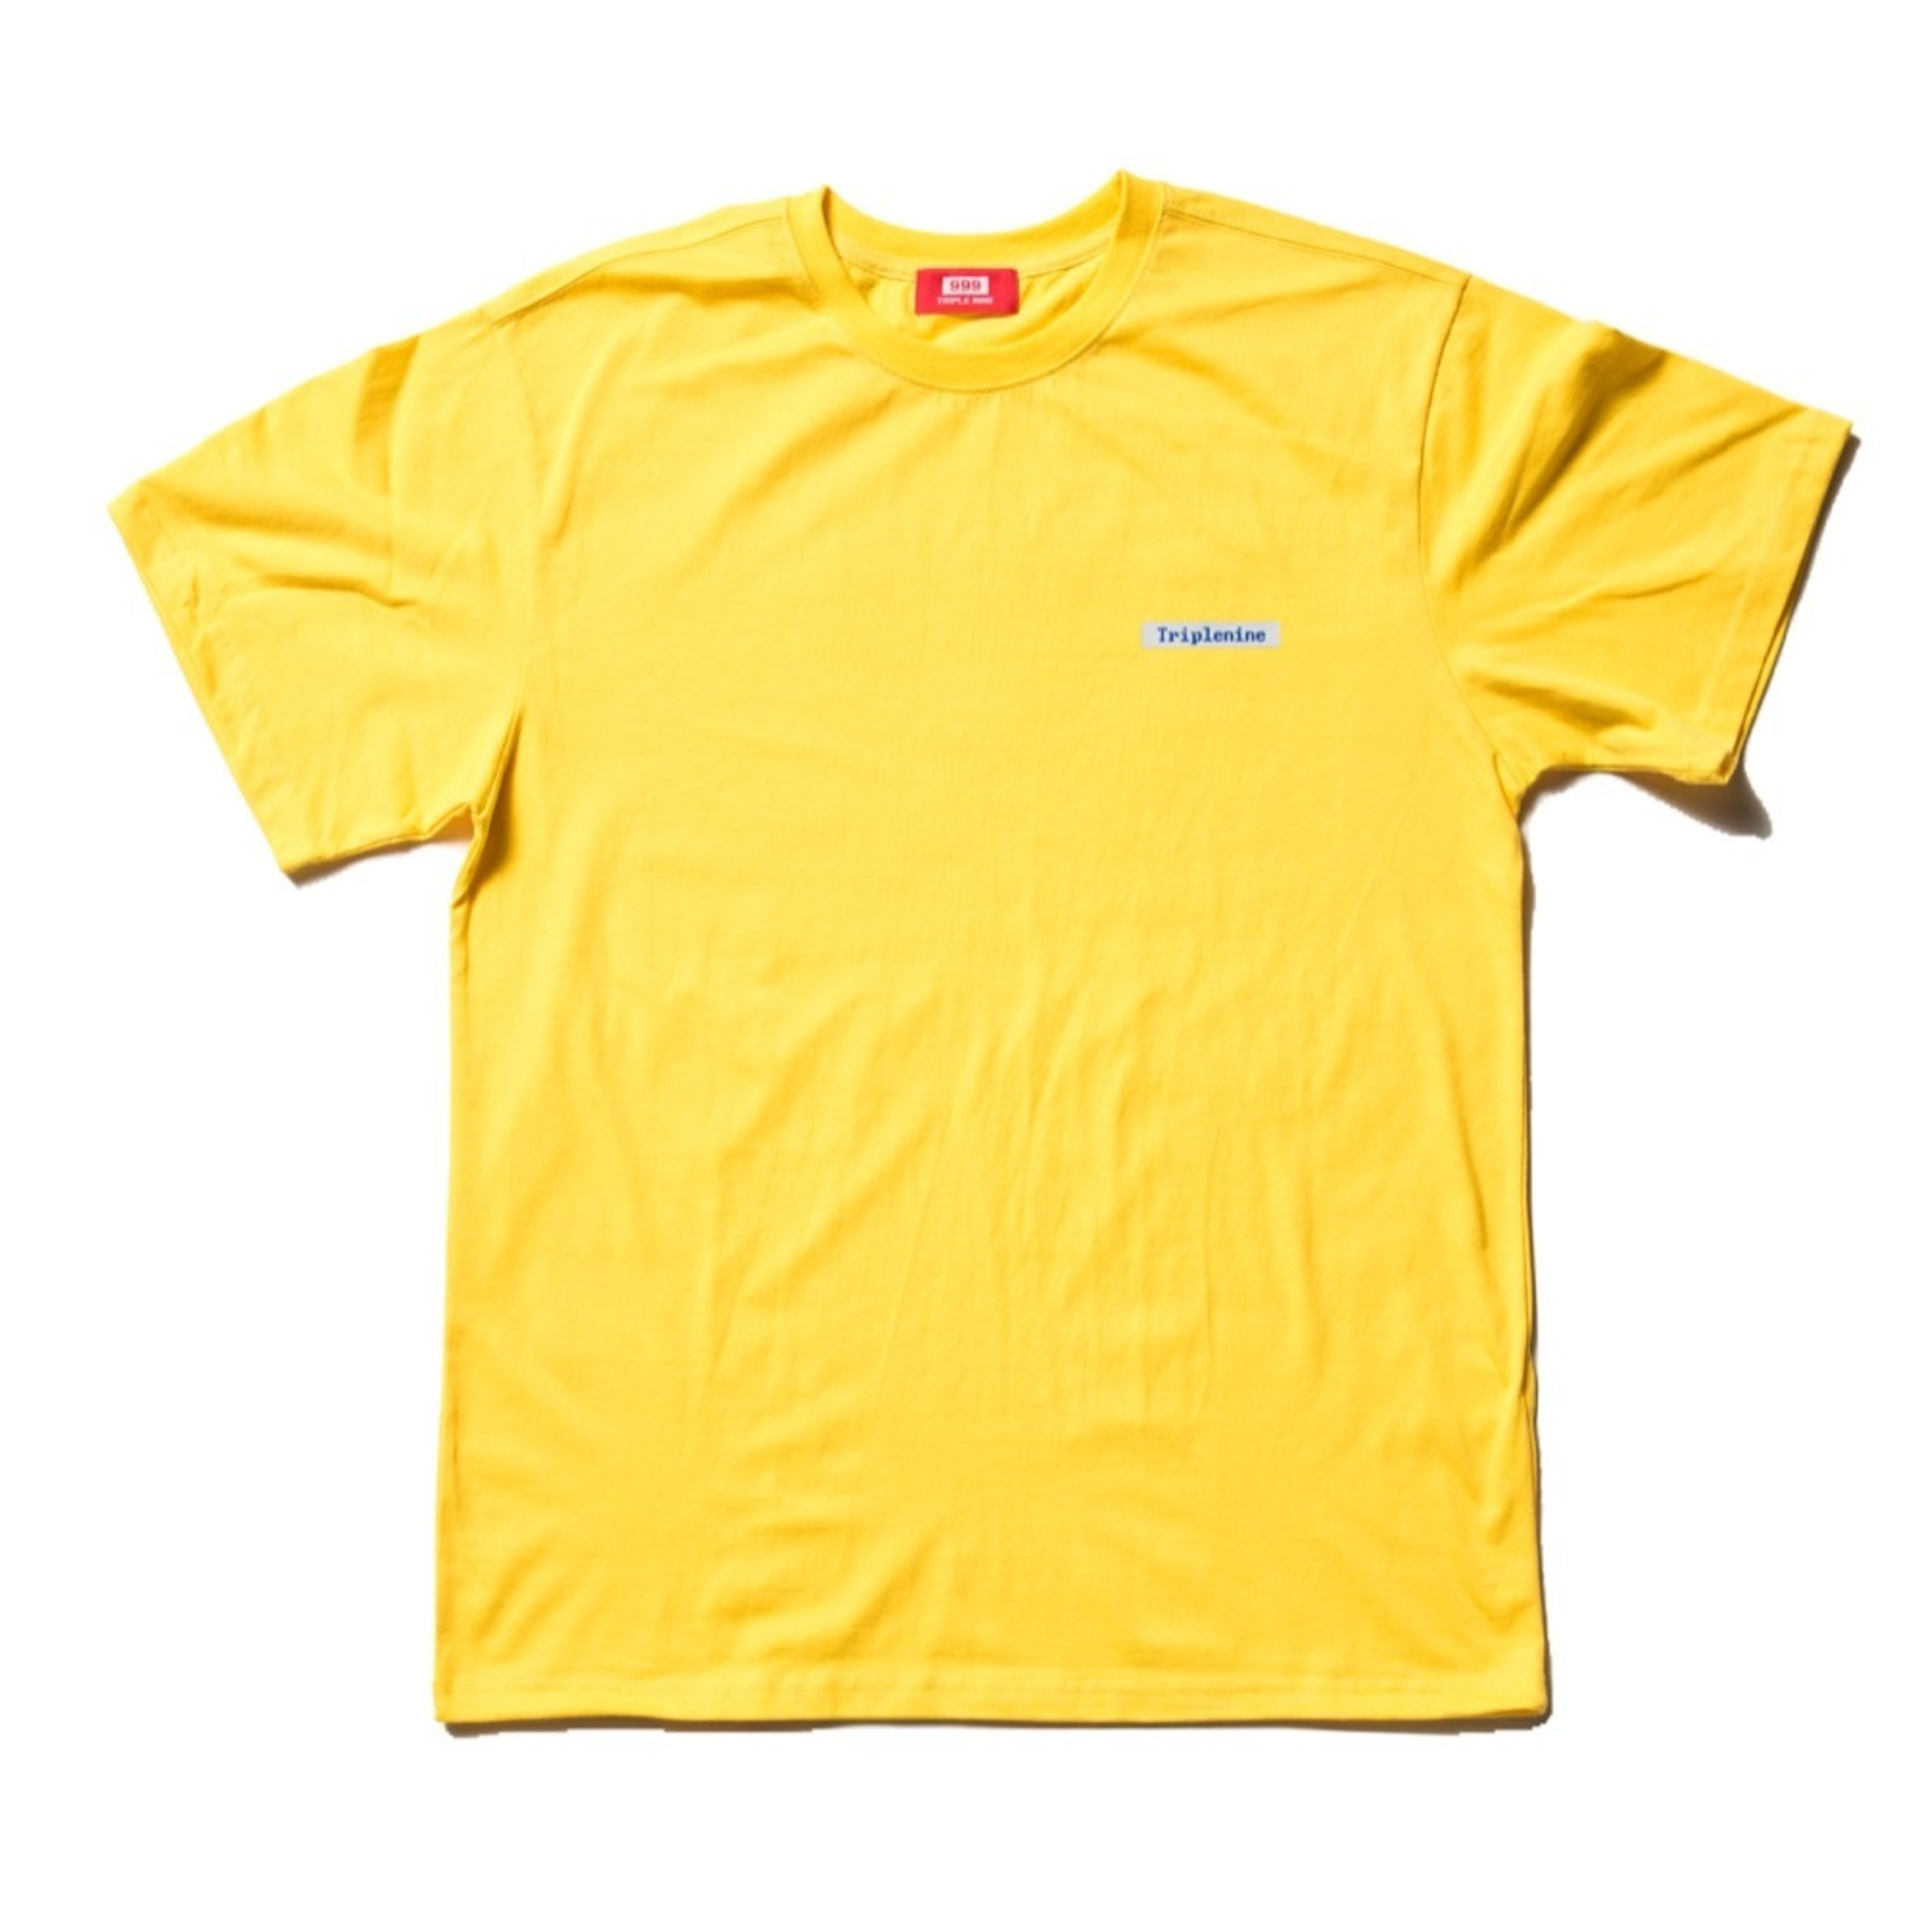 BLUE SCREEN YELLOW T-SHIRT